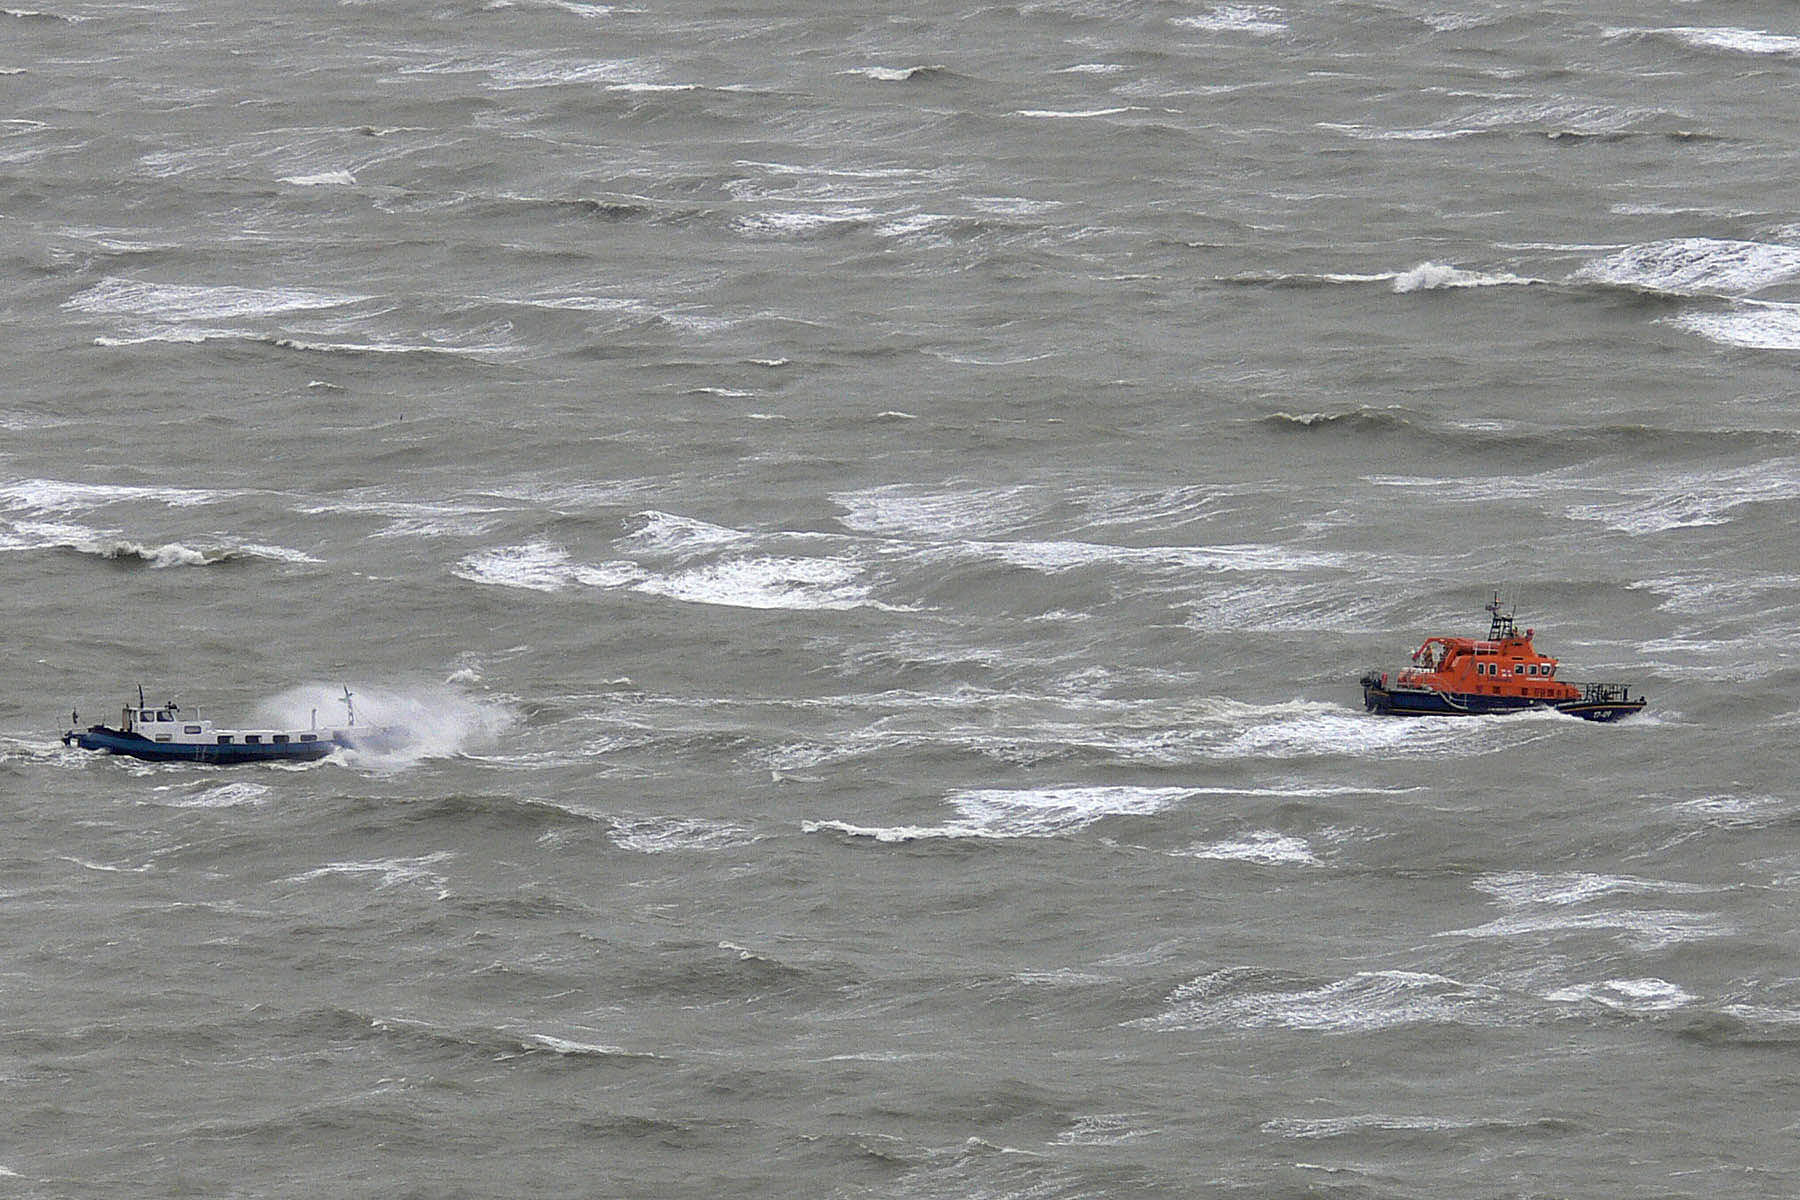 Lifeboat rescues canal boat at sea in F8 winds and huge